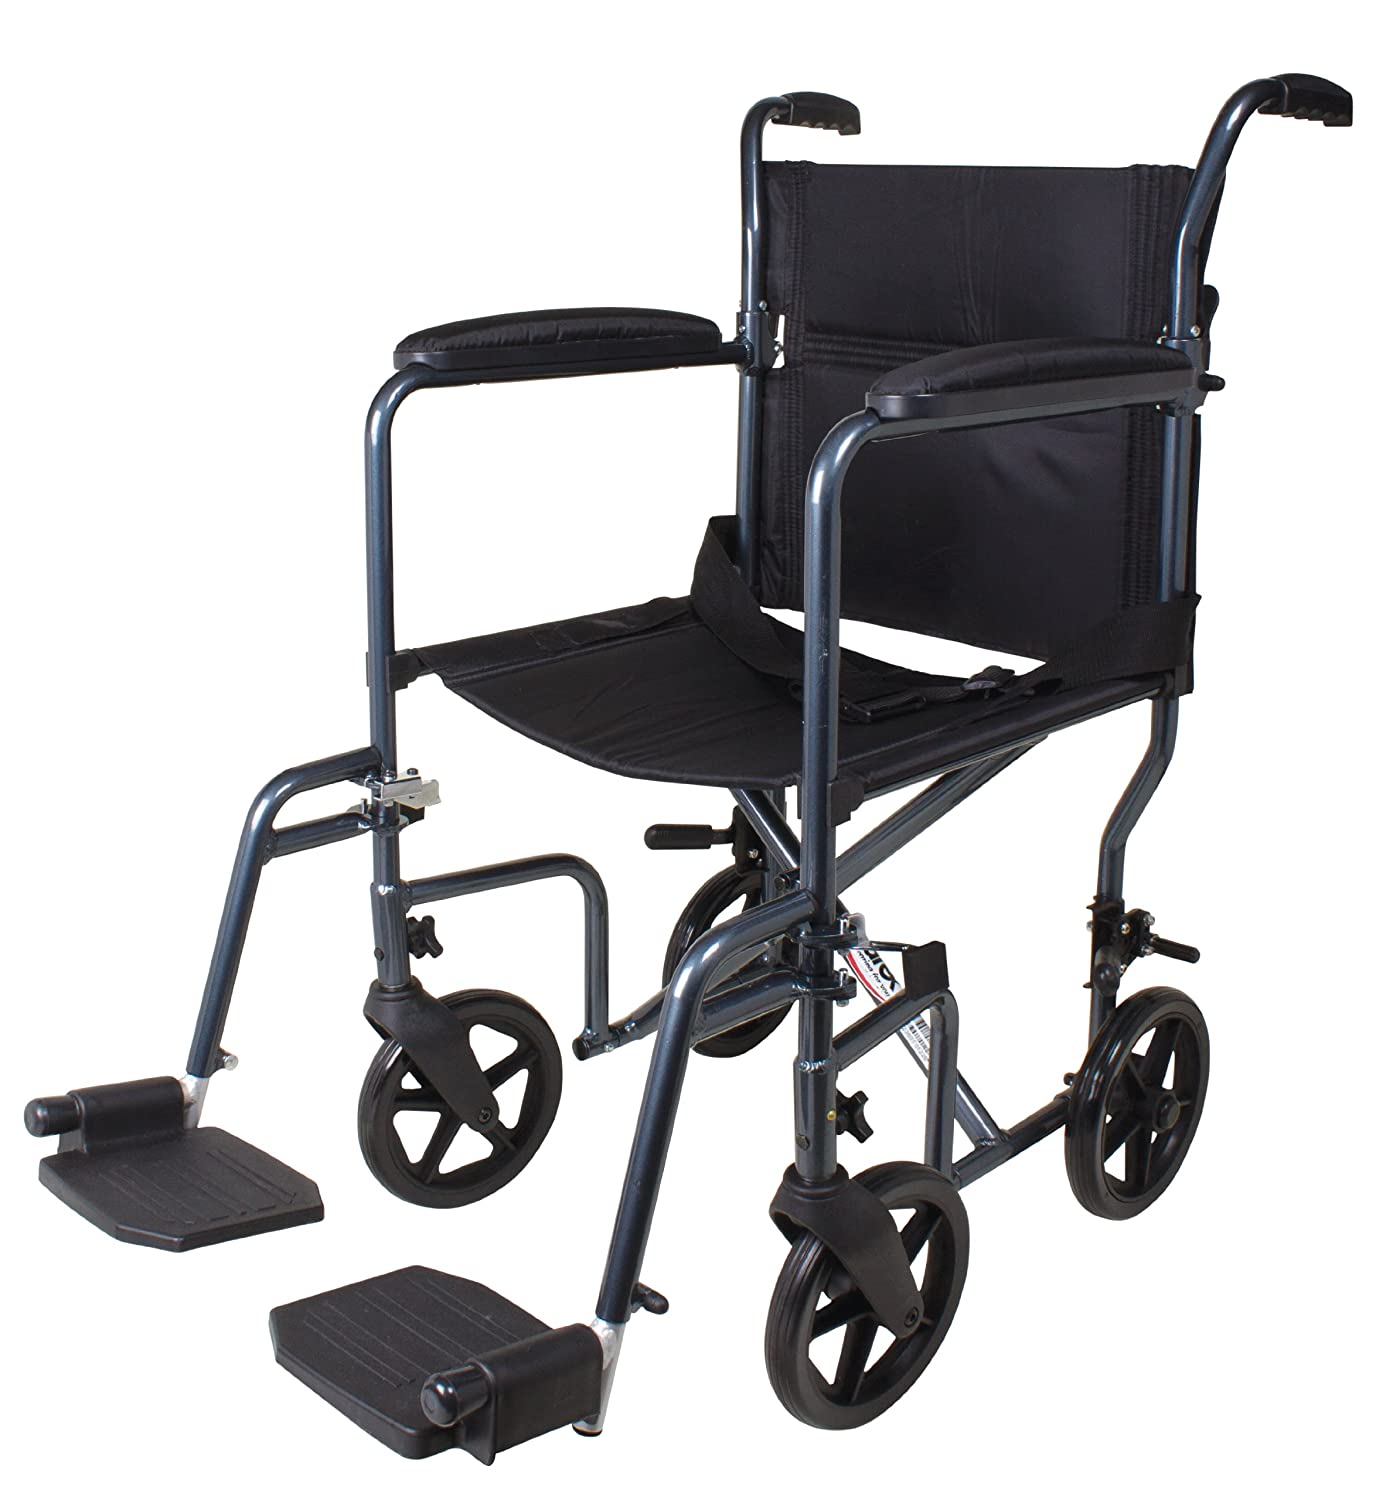 chair inch fly dp view larger chairs transport amazon weight drive com medical